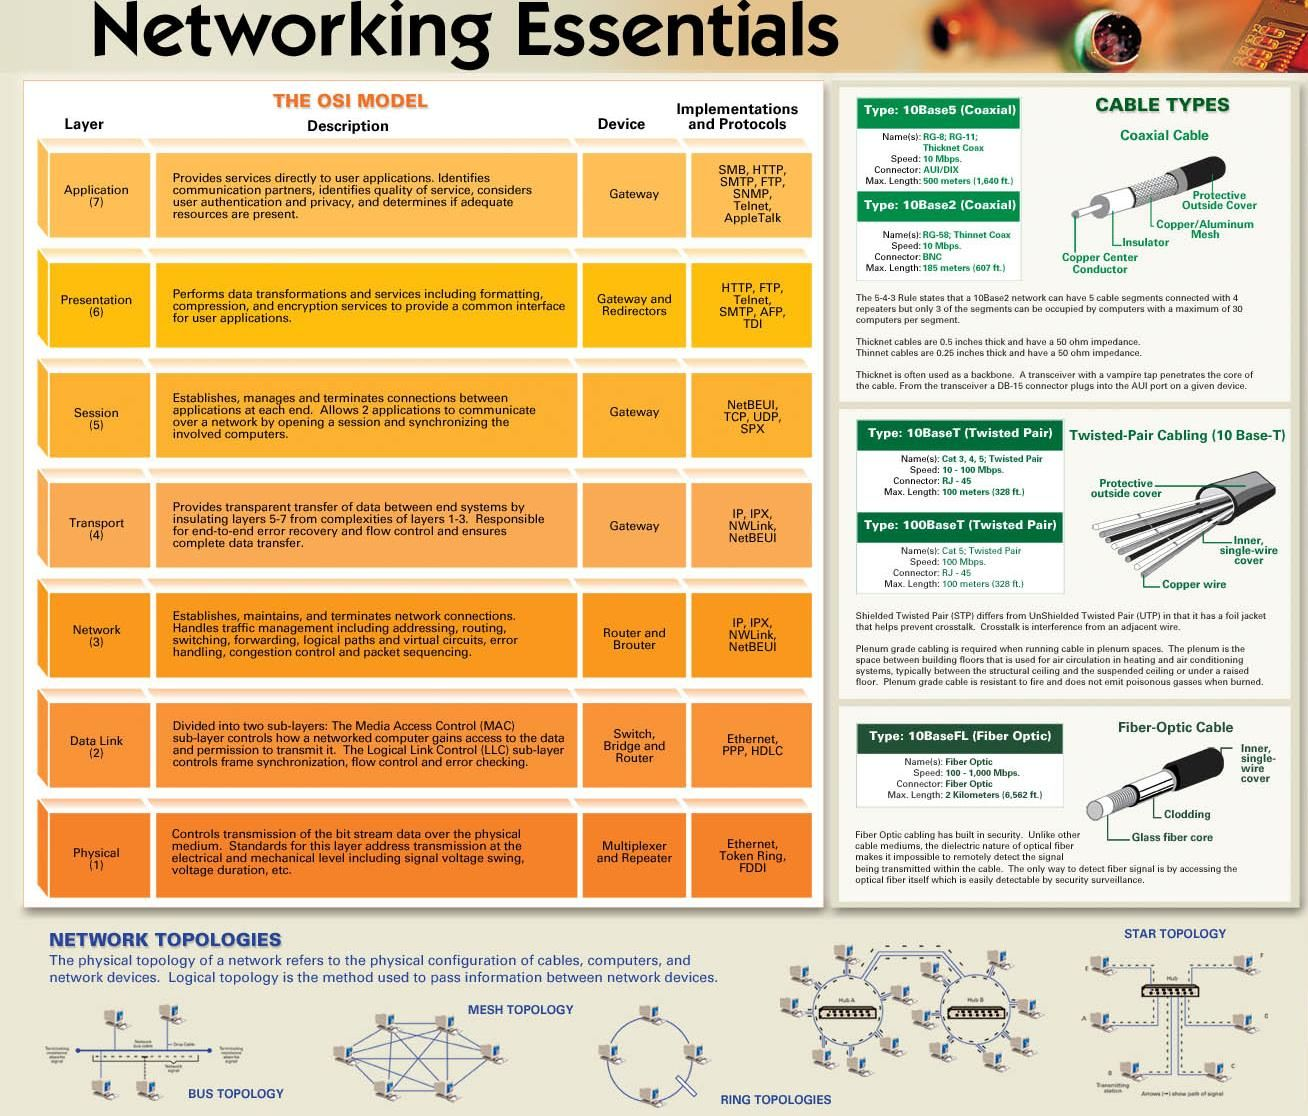 networking essentials 4testscom - your free, practice test site for high school, college, professional, and standardized exams and tests - networking essentials exam.